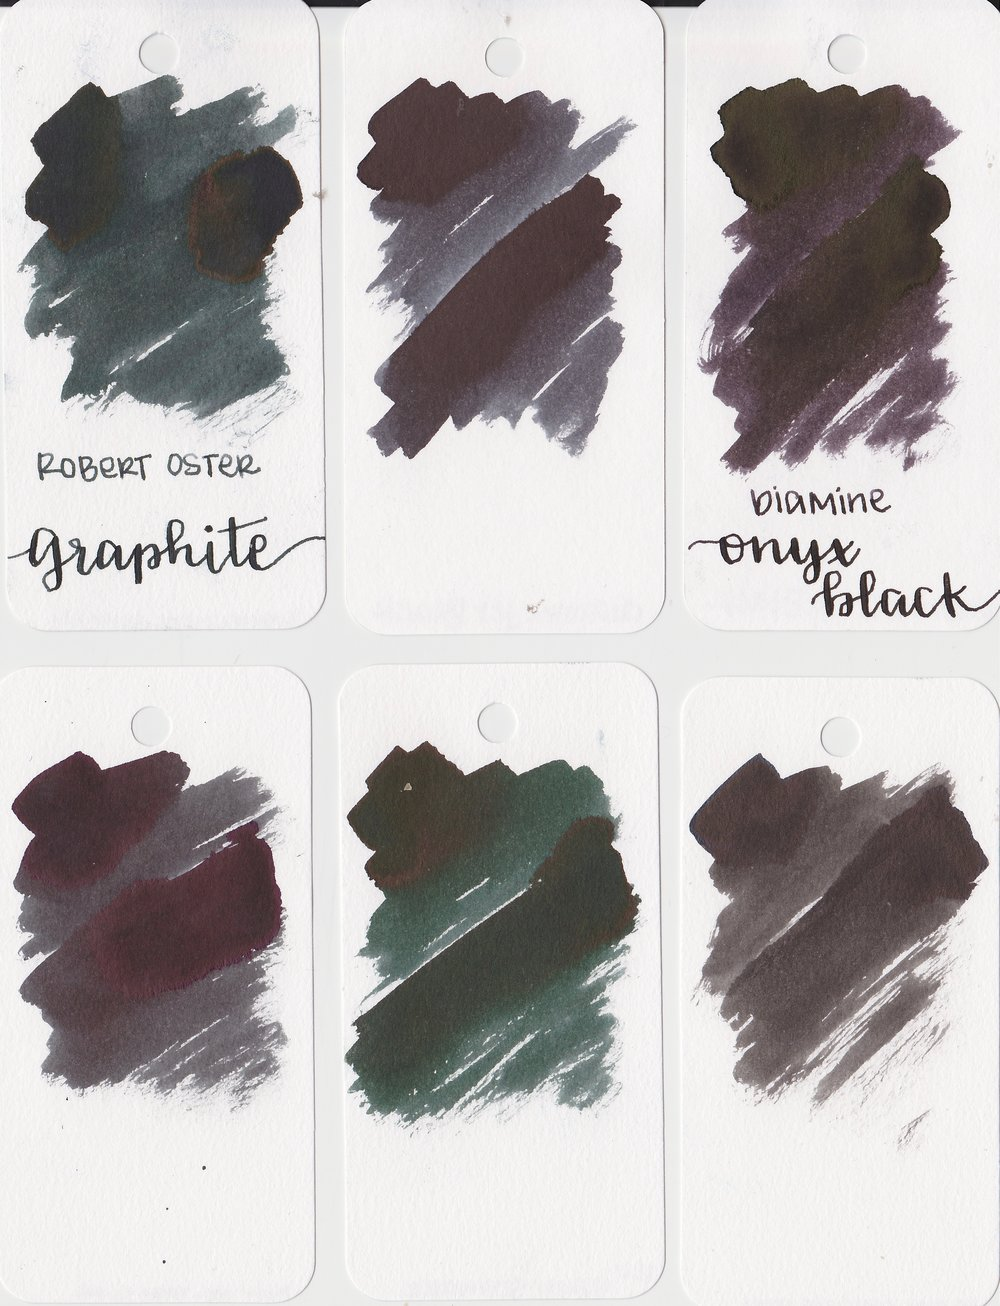 Similar inks: - Top row: left to right, Robert Oster Graphite, Diamine Jet Black, and Diamine Onyx Black. Bottom row: Pilot Iroshizuku Take-sumi, Robert Oster Grun-Schwarz, and Pelikan Edelstein Onyx.